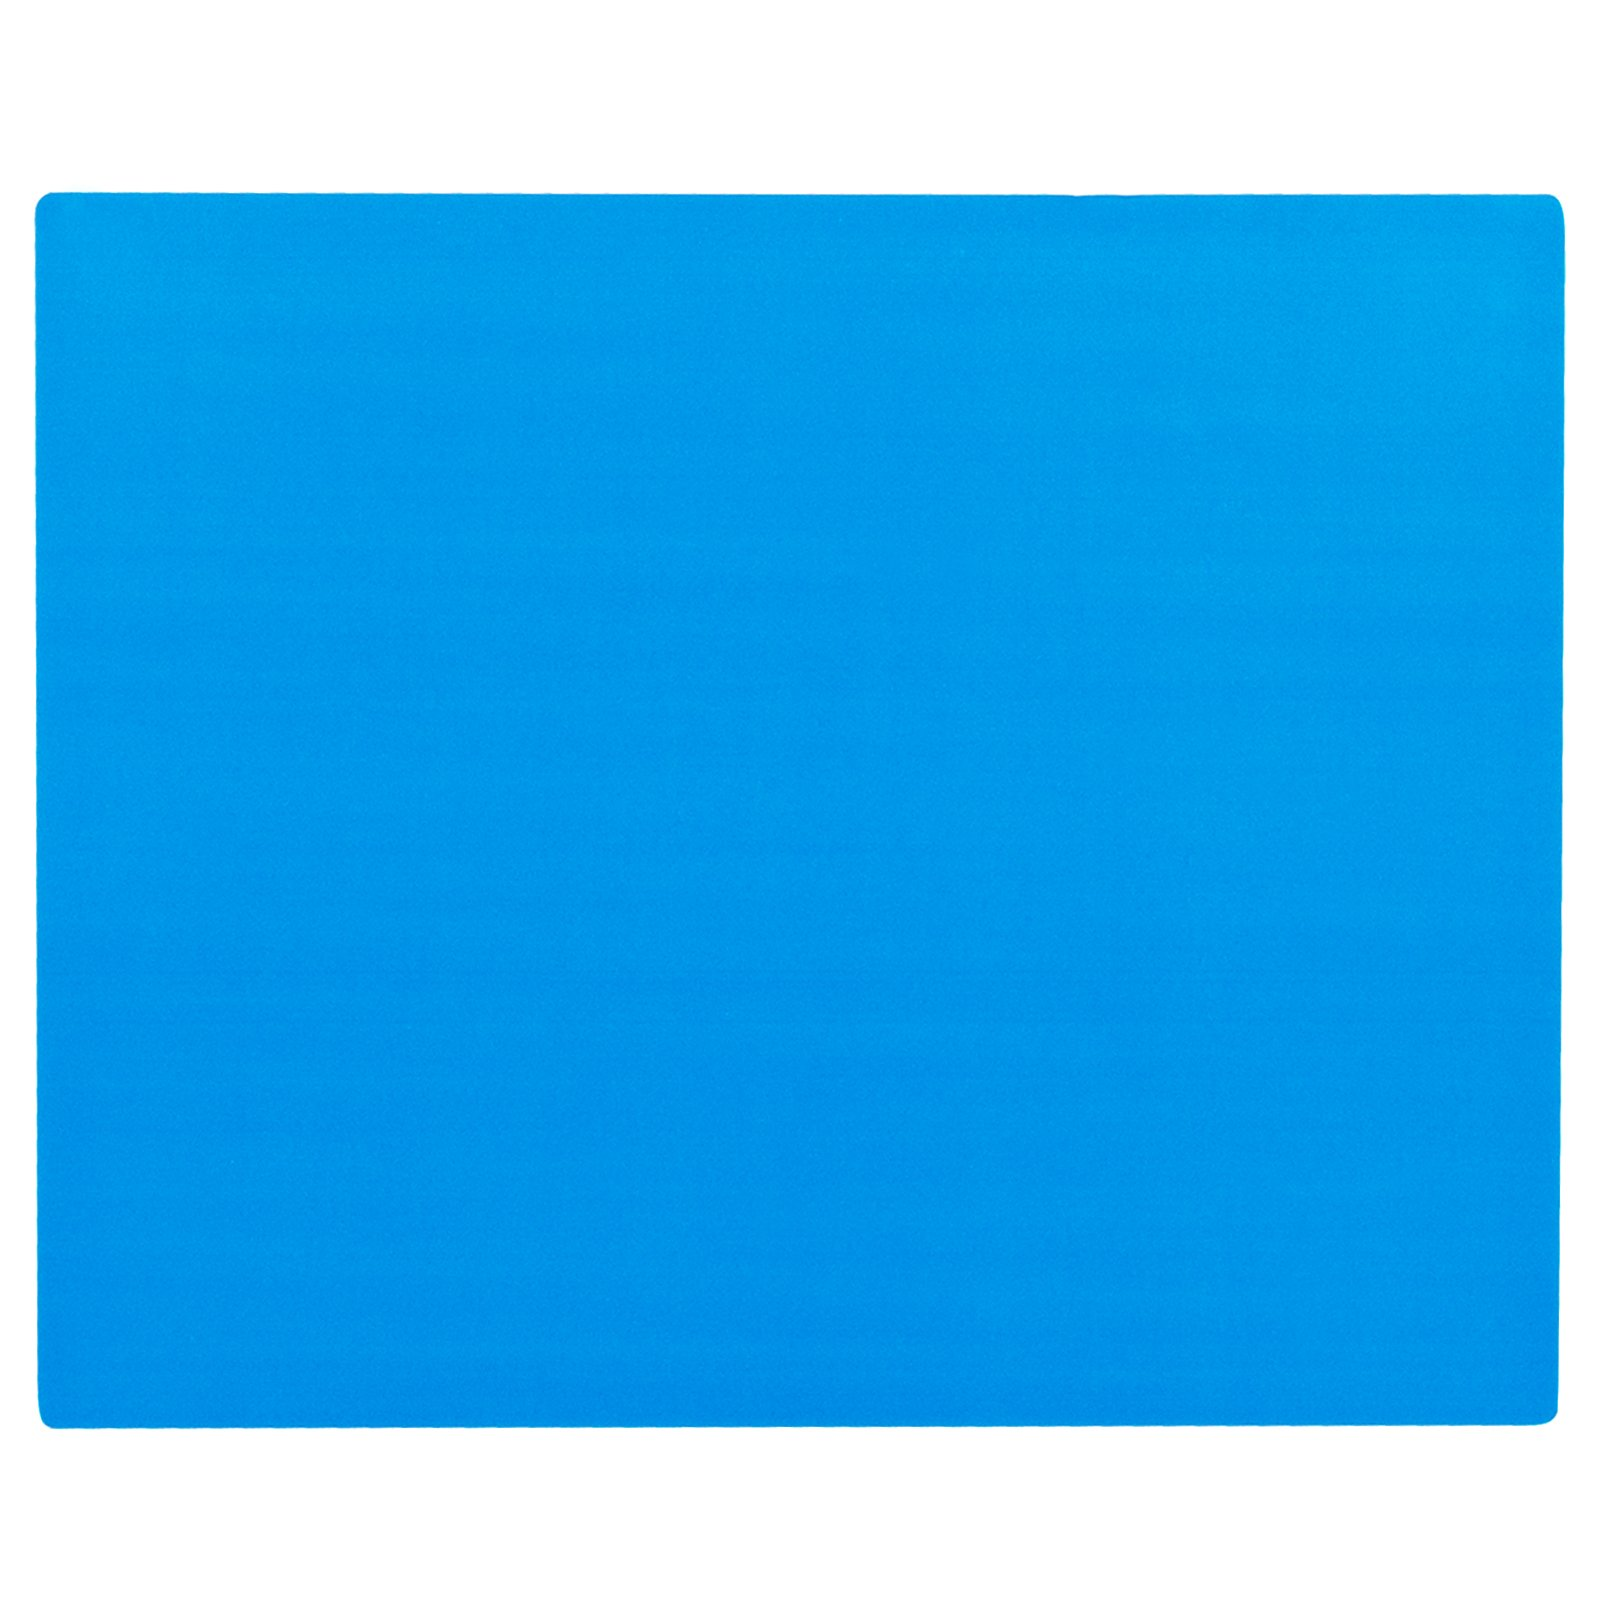 Ocean Blue Activity Placemats (4 count)